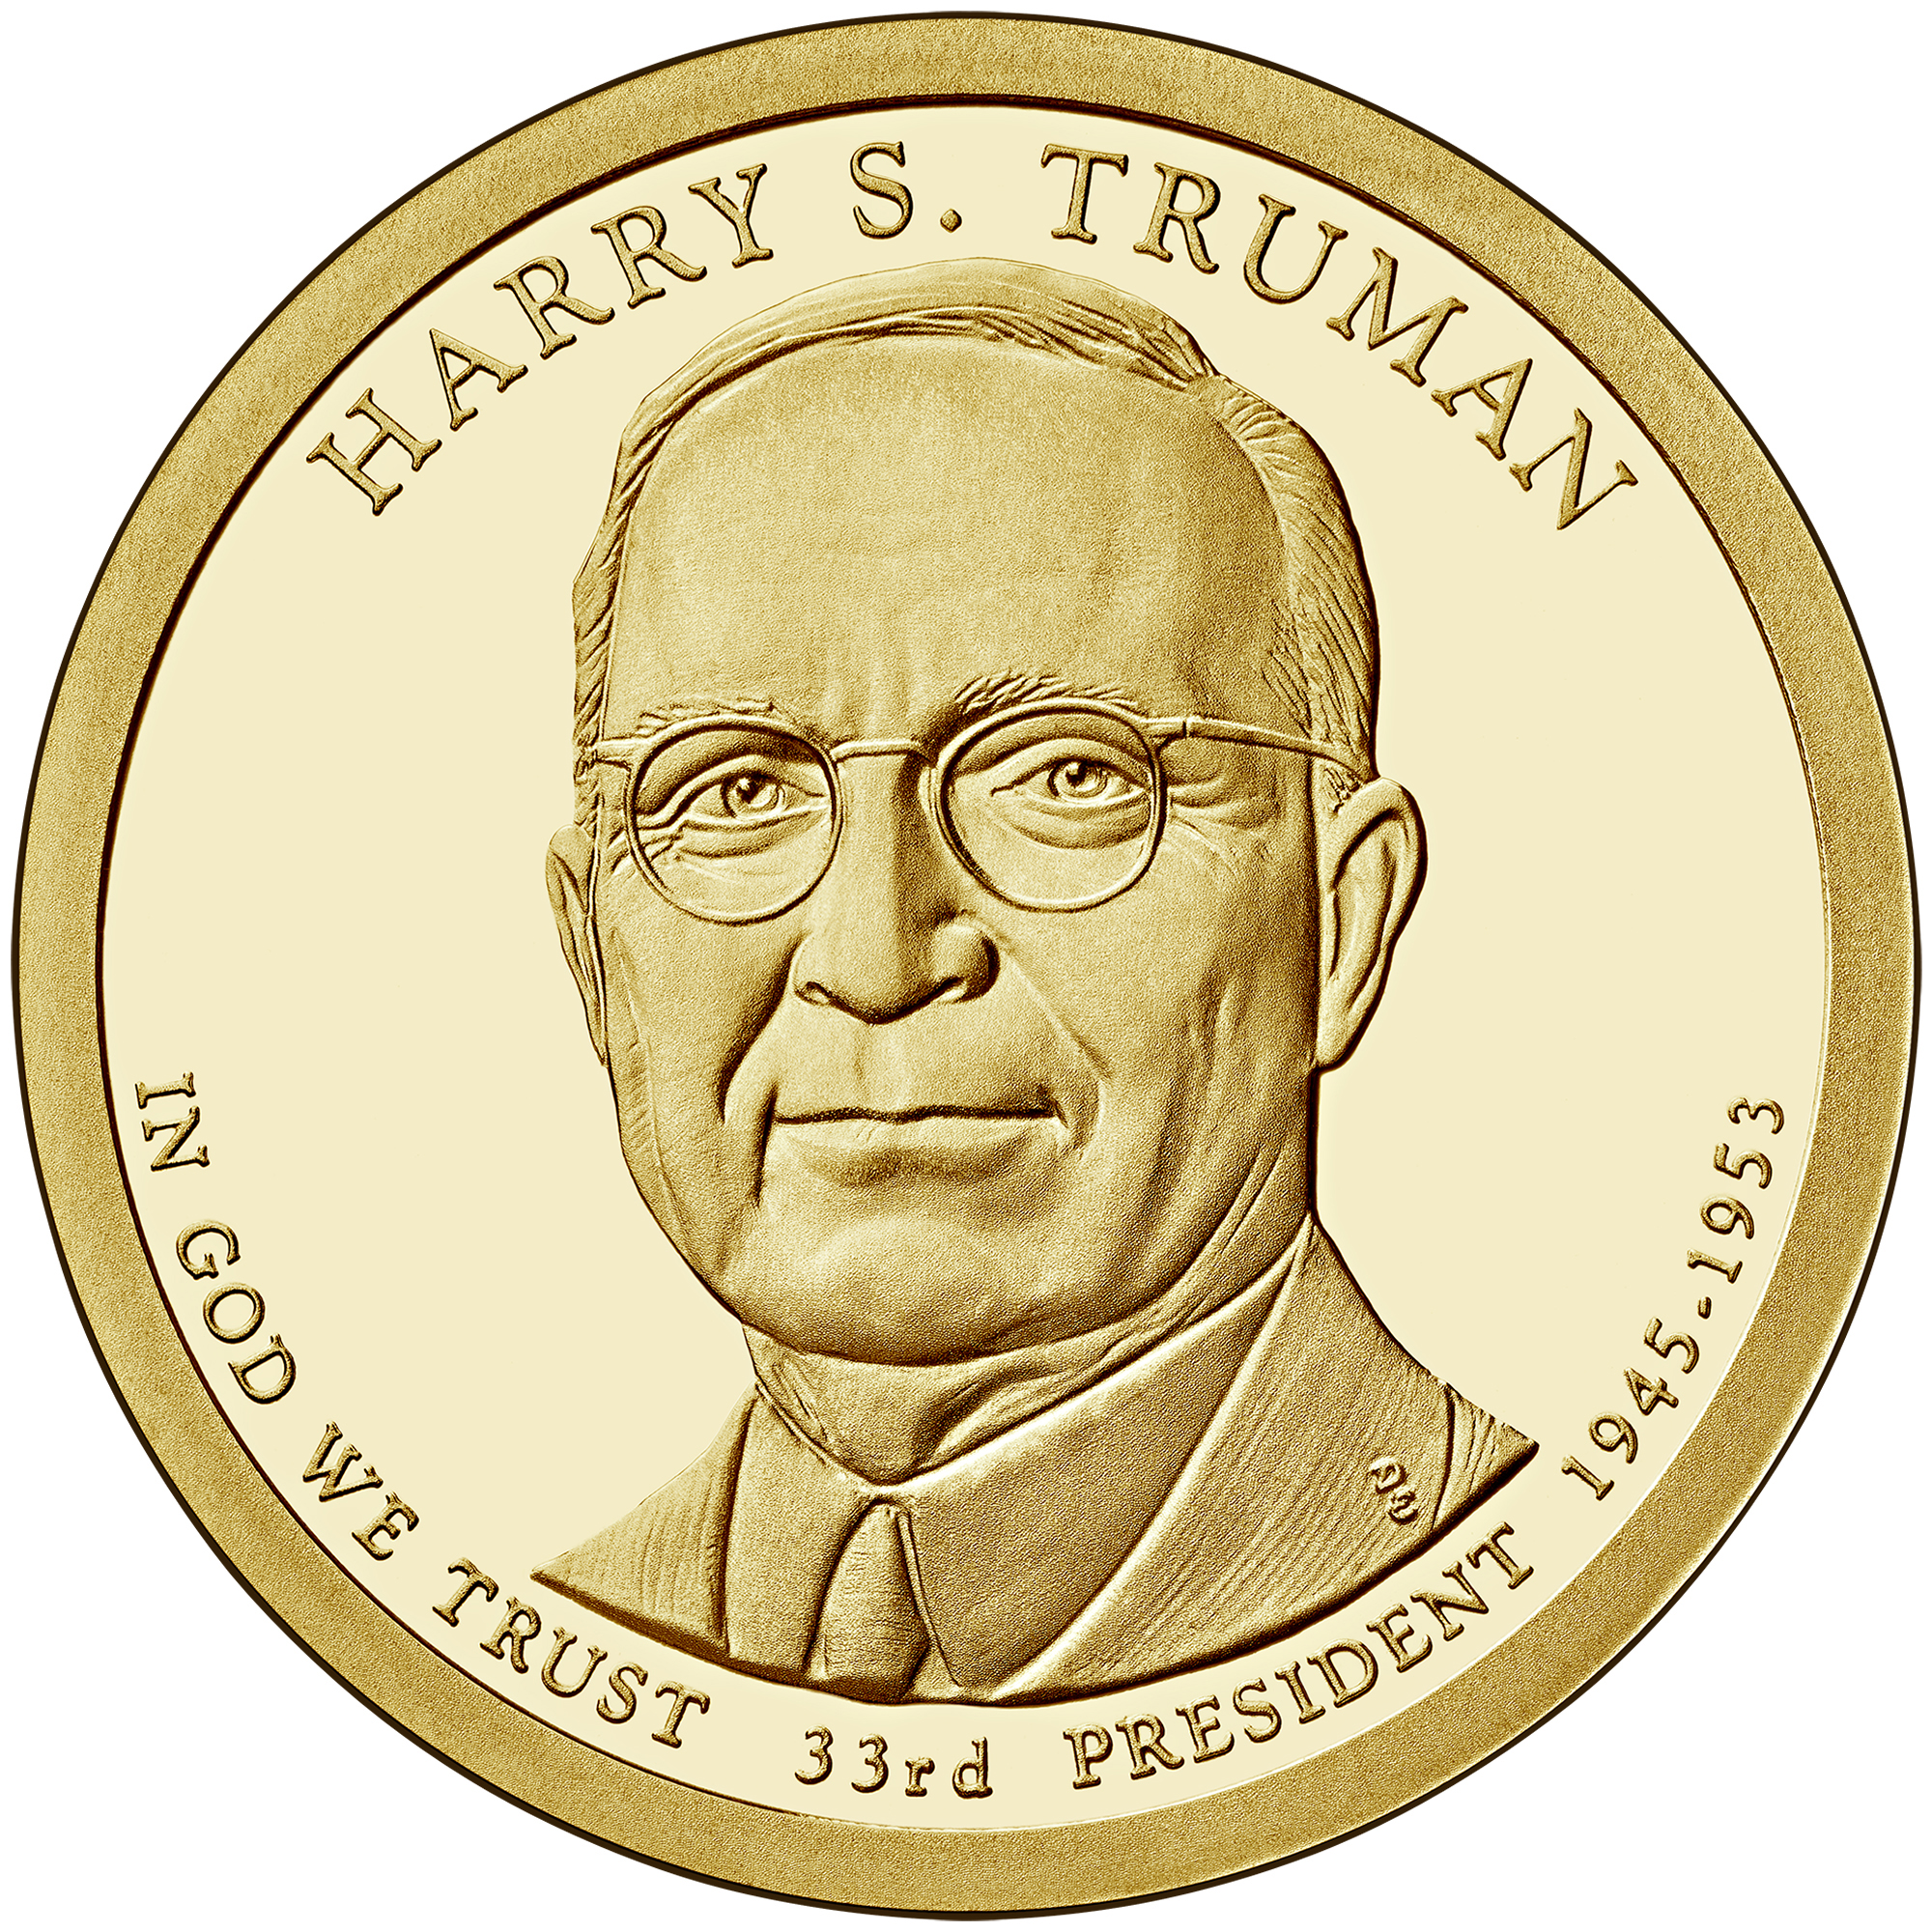 2015 Presidential Dollar Coin Harry S. Truman Proof Obverse